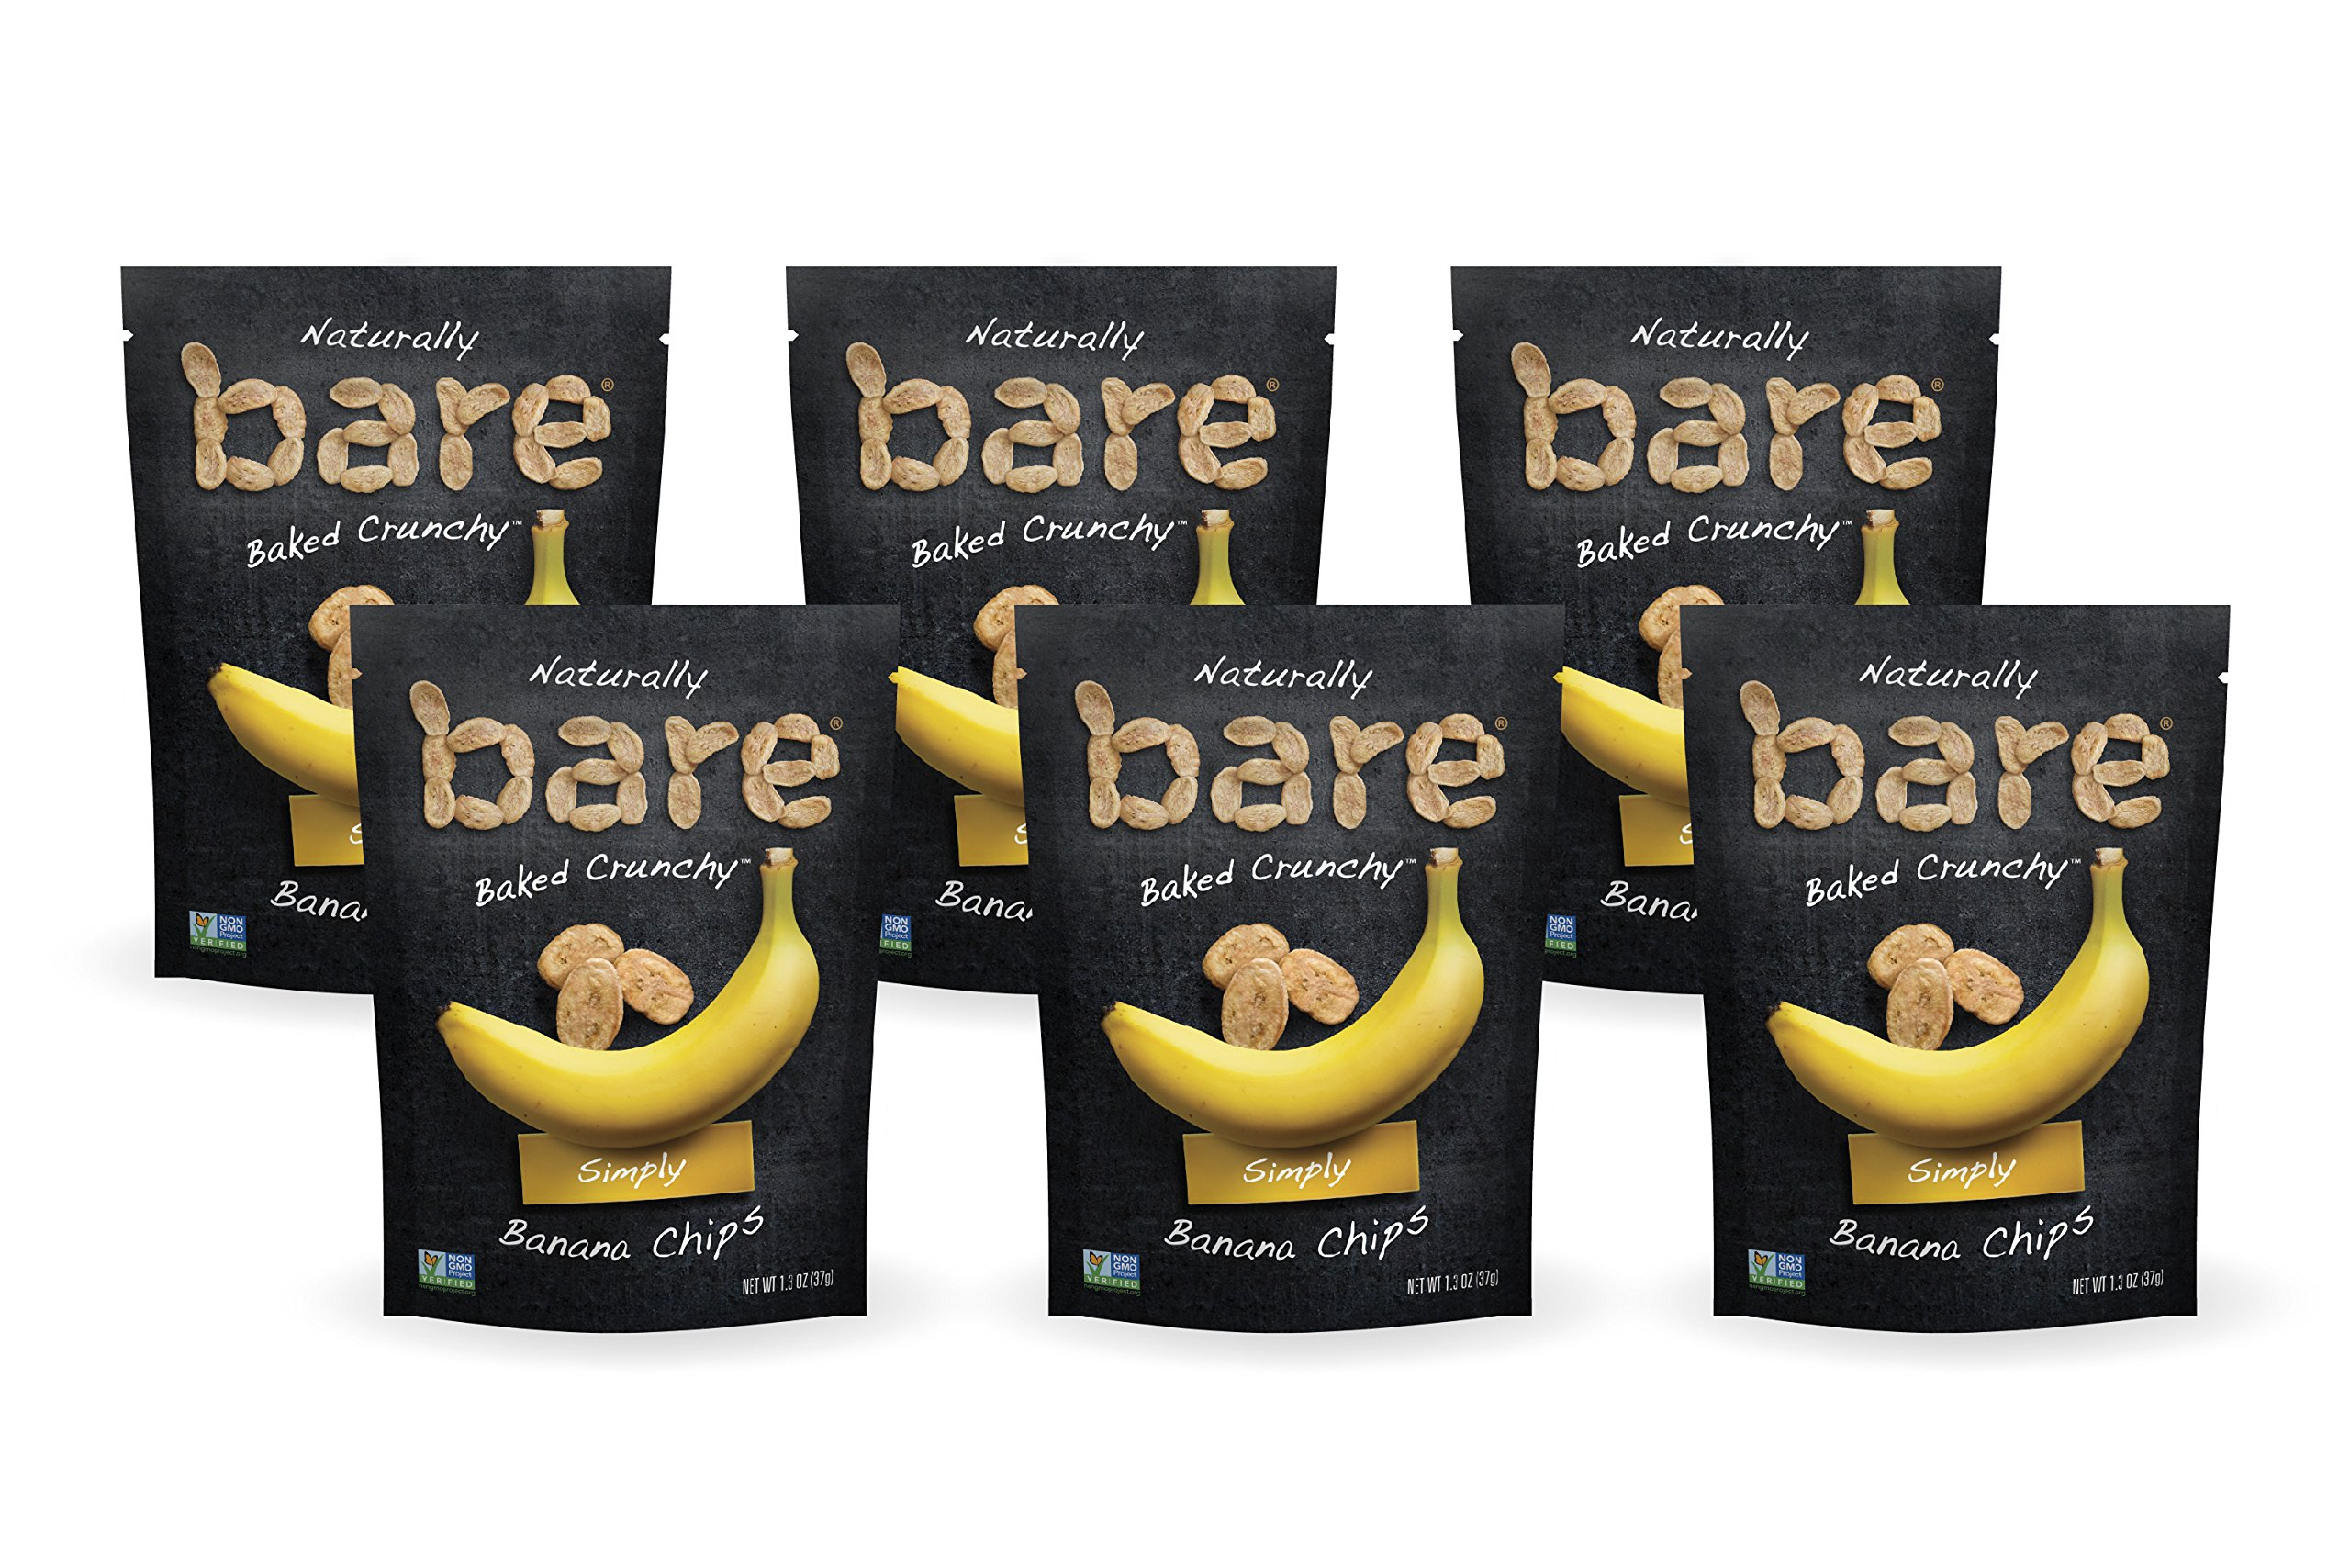 Bare Natural Banana Chips, Simply Toasted, Gluten Free + Baked, Single Serve Bag - 1.3 Oz (6 Count)